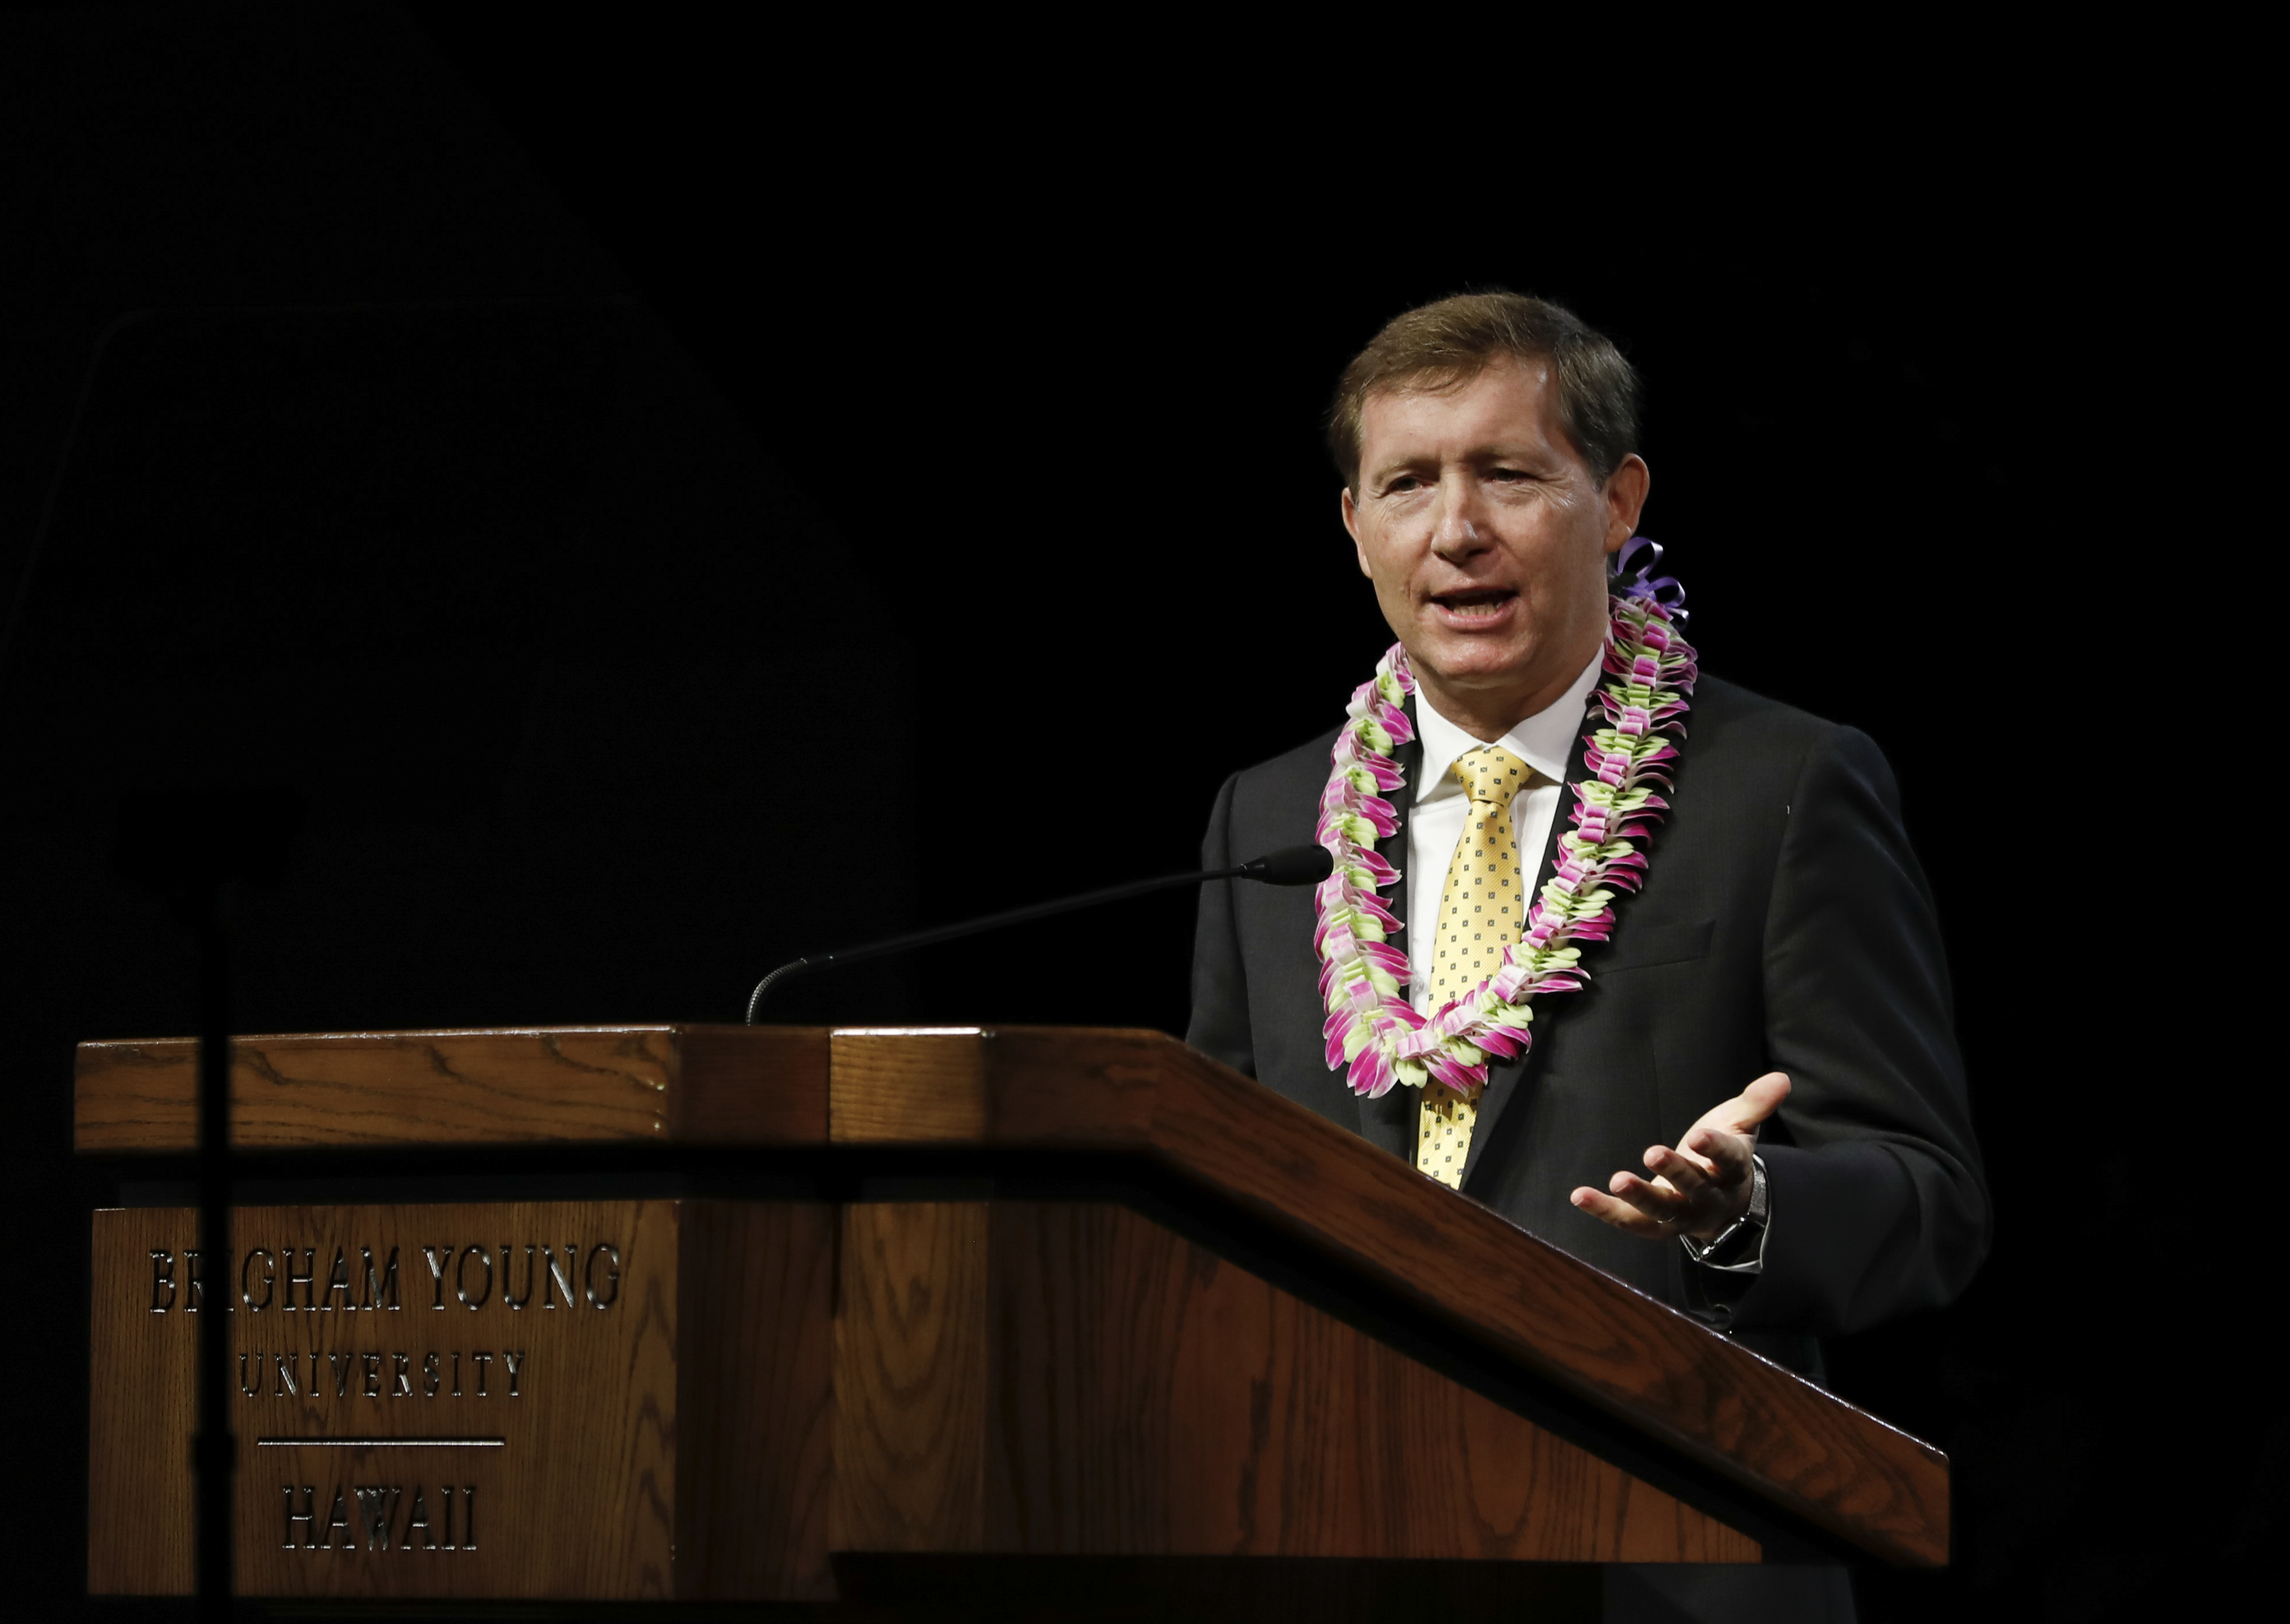 Elder L. Todd Budge, General Authority Seventy, speaks during a BYU-Hawaii devotional on Tuesday, Sept. 24, 2019.